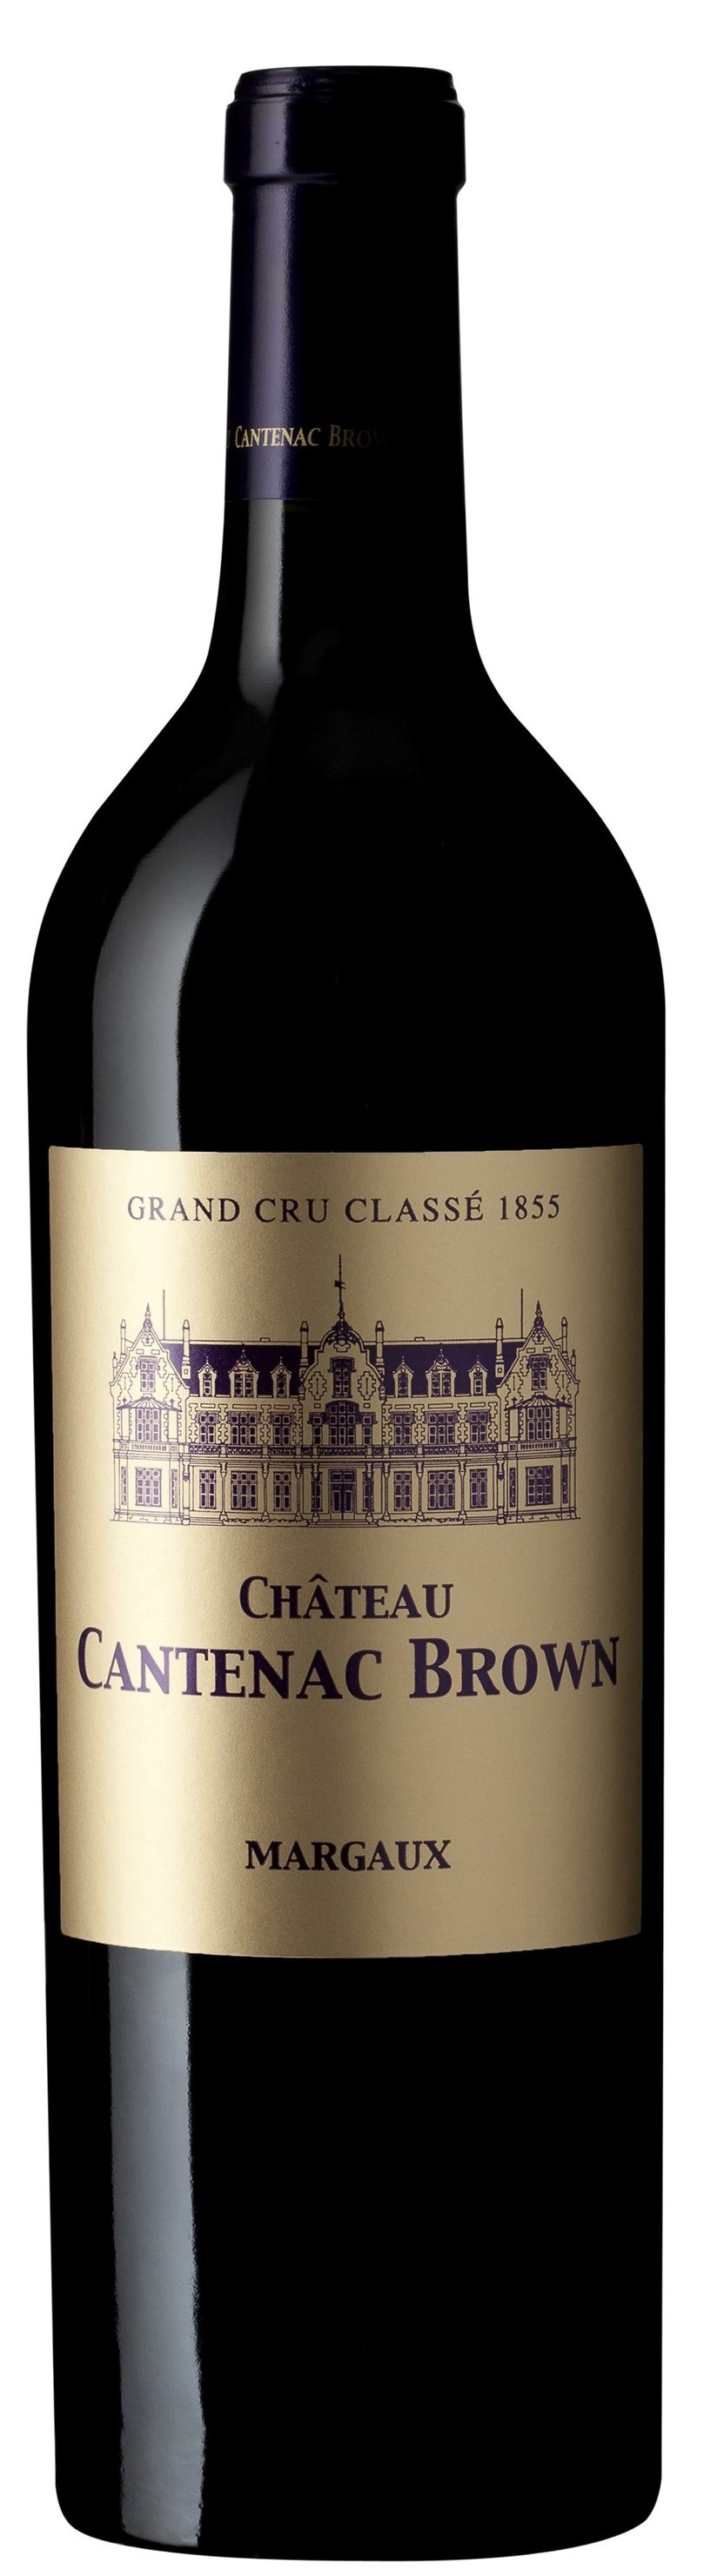 Chateau Cantenac Brown 2015, Margaux